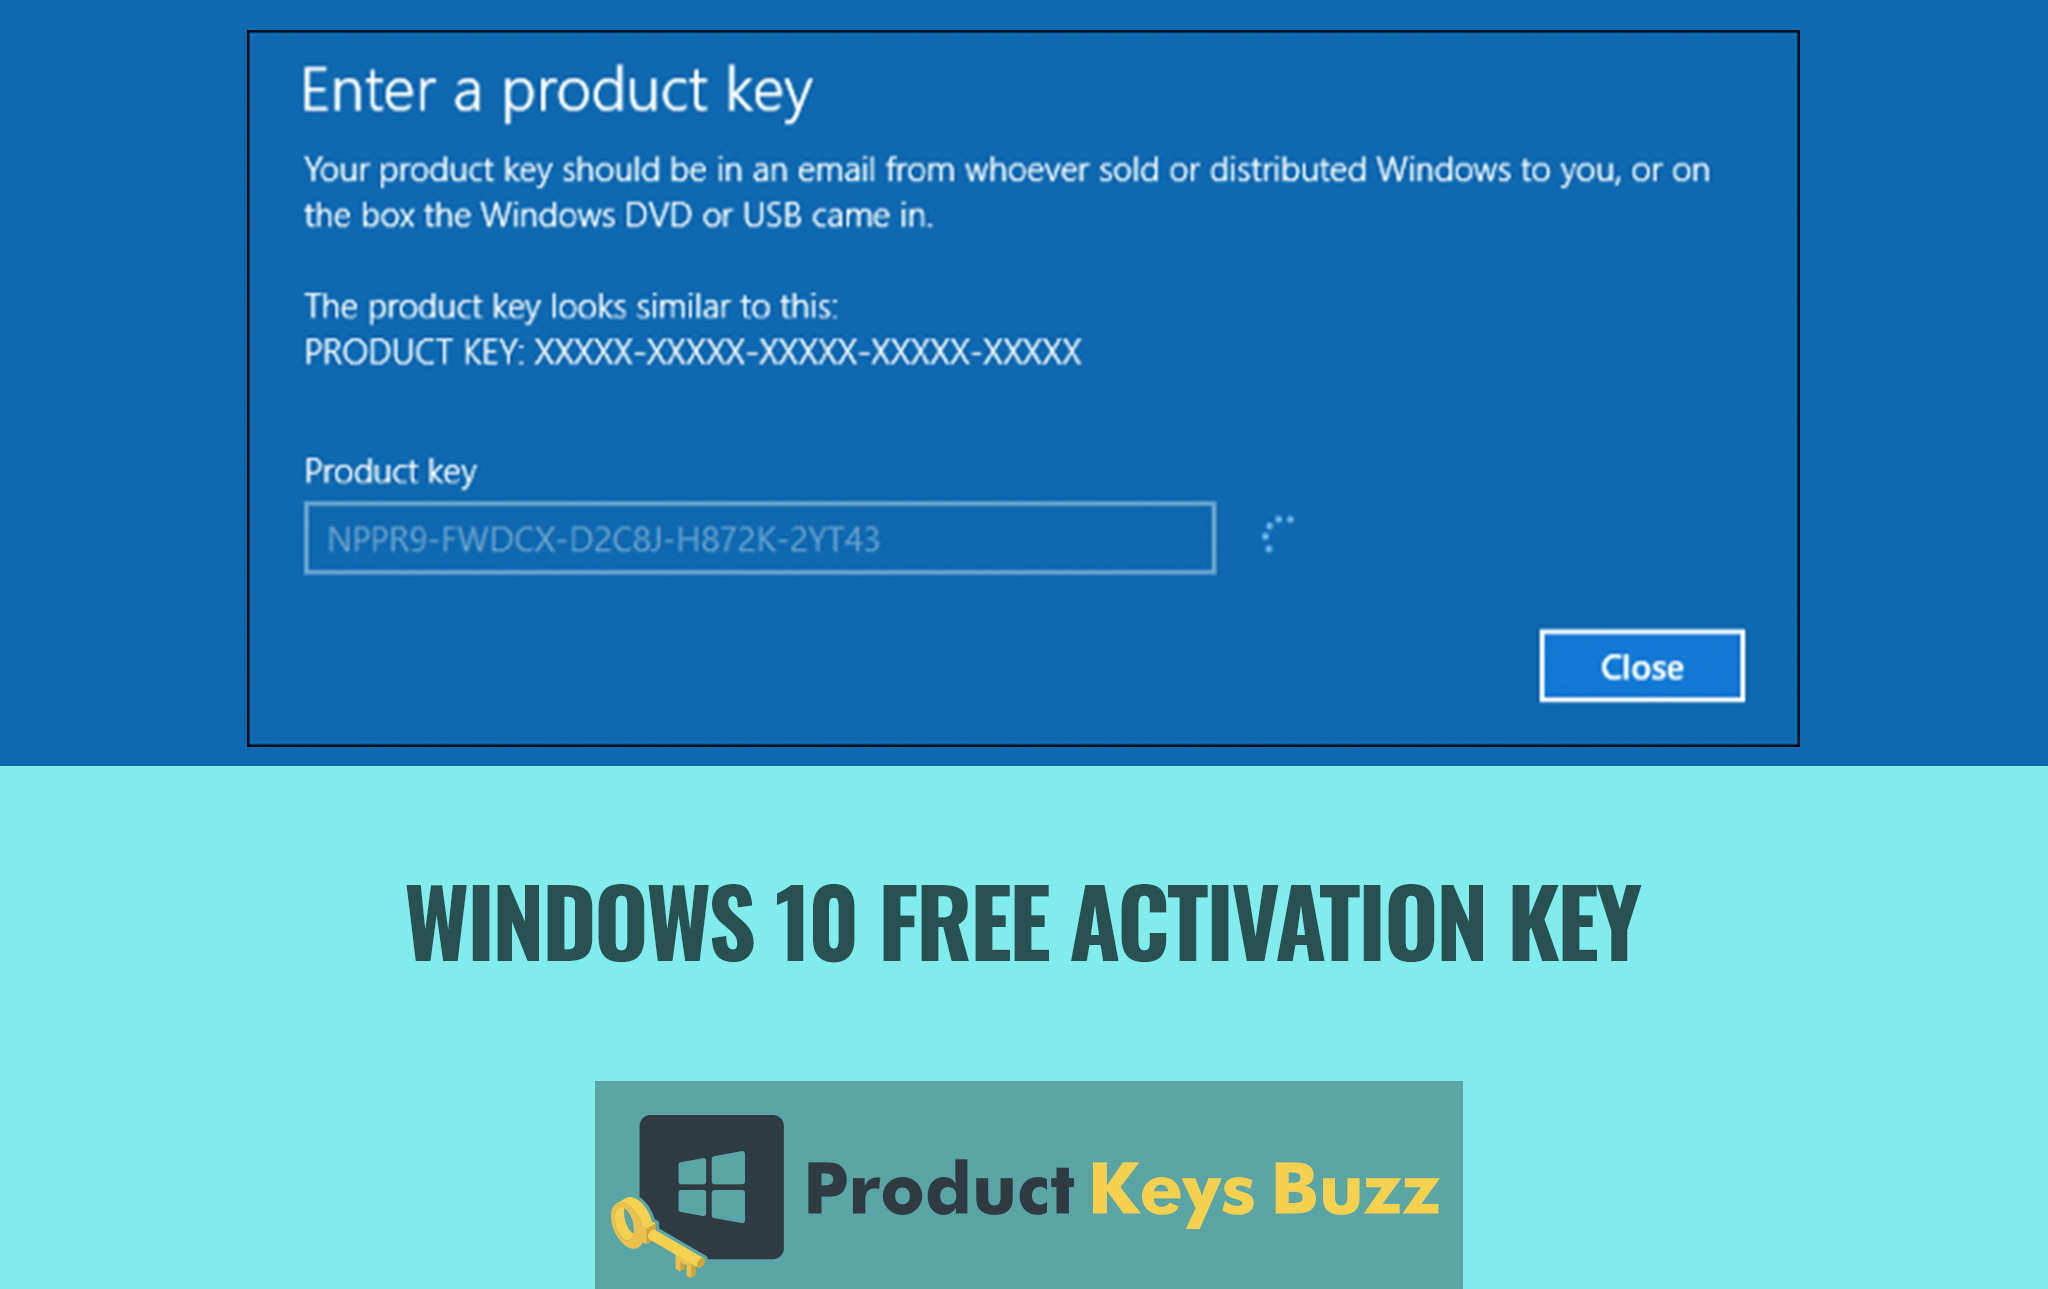 Updated} Windows 10 Free Activation Key & 64bit - 32bit